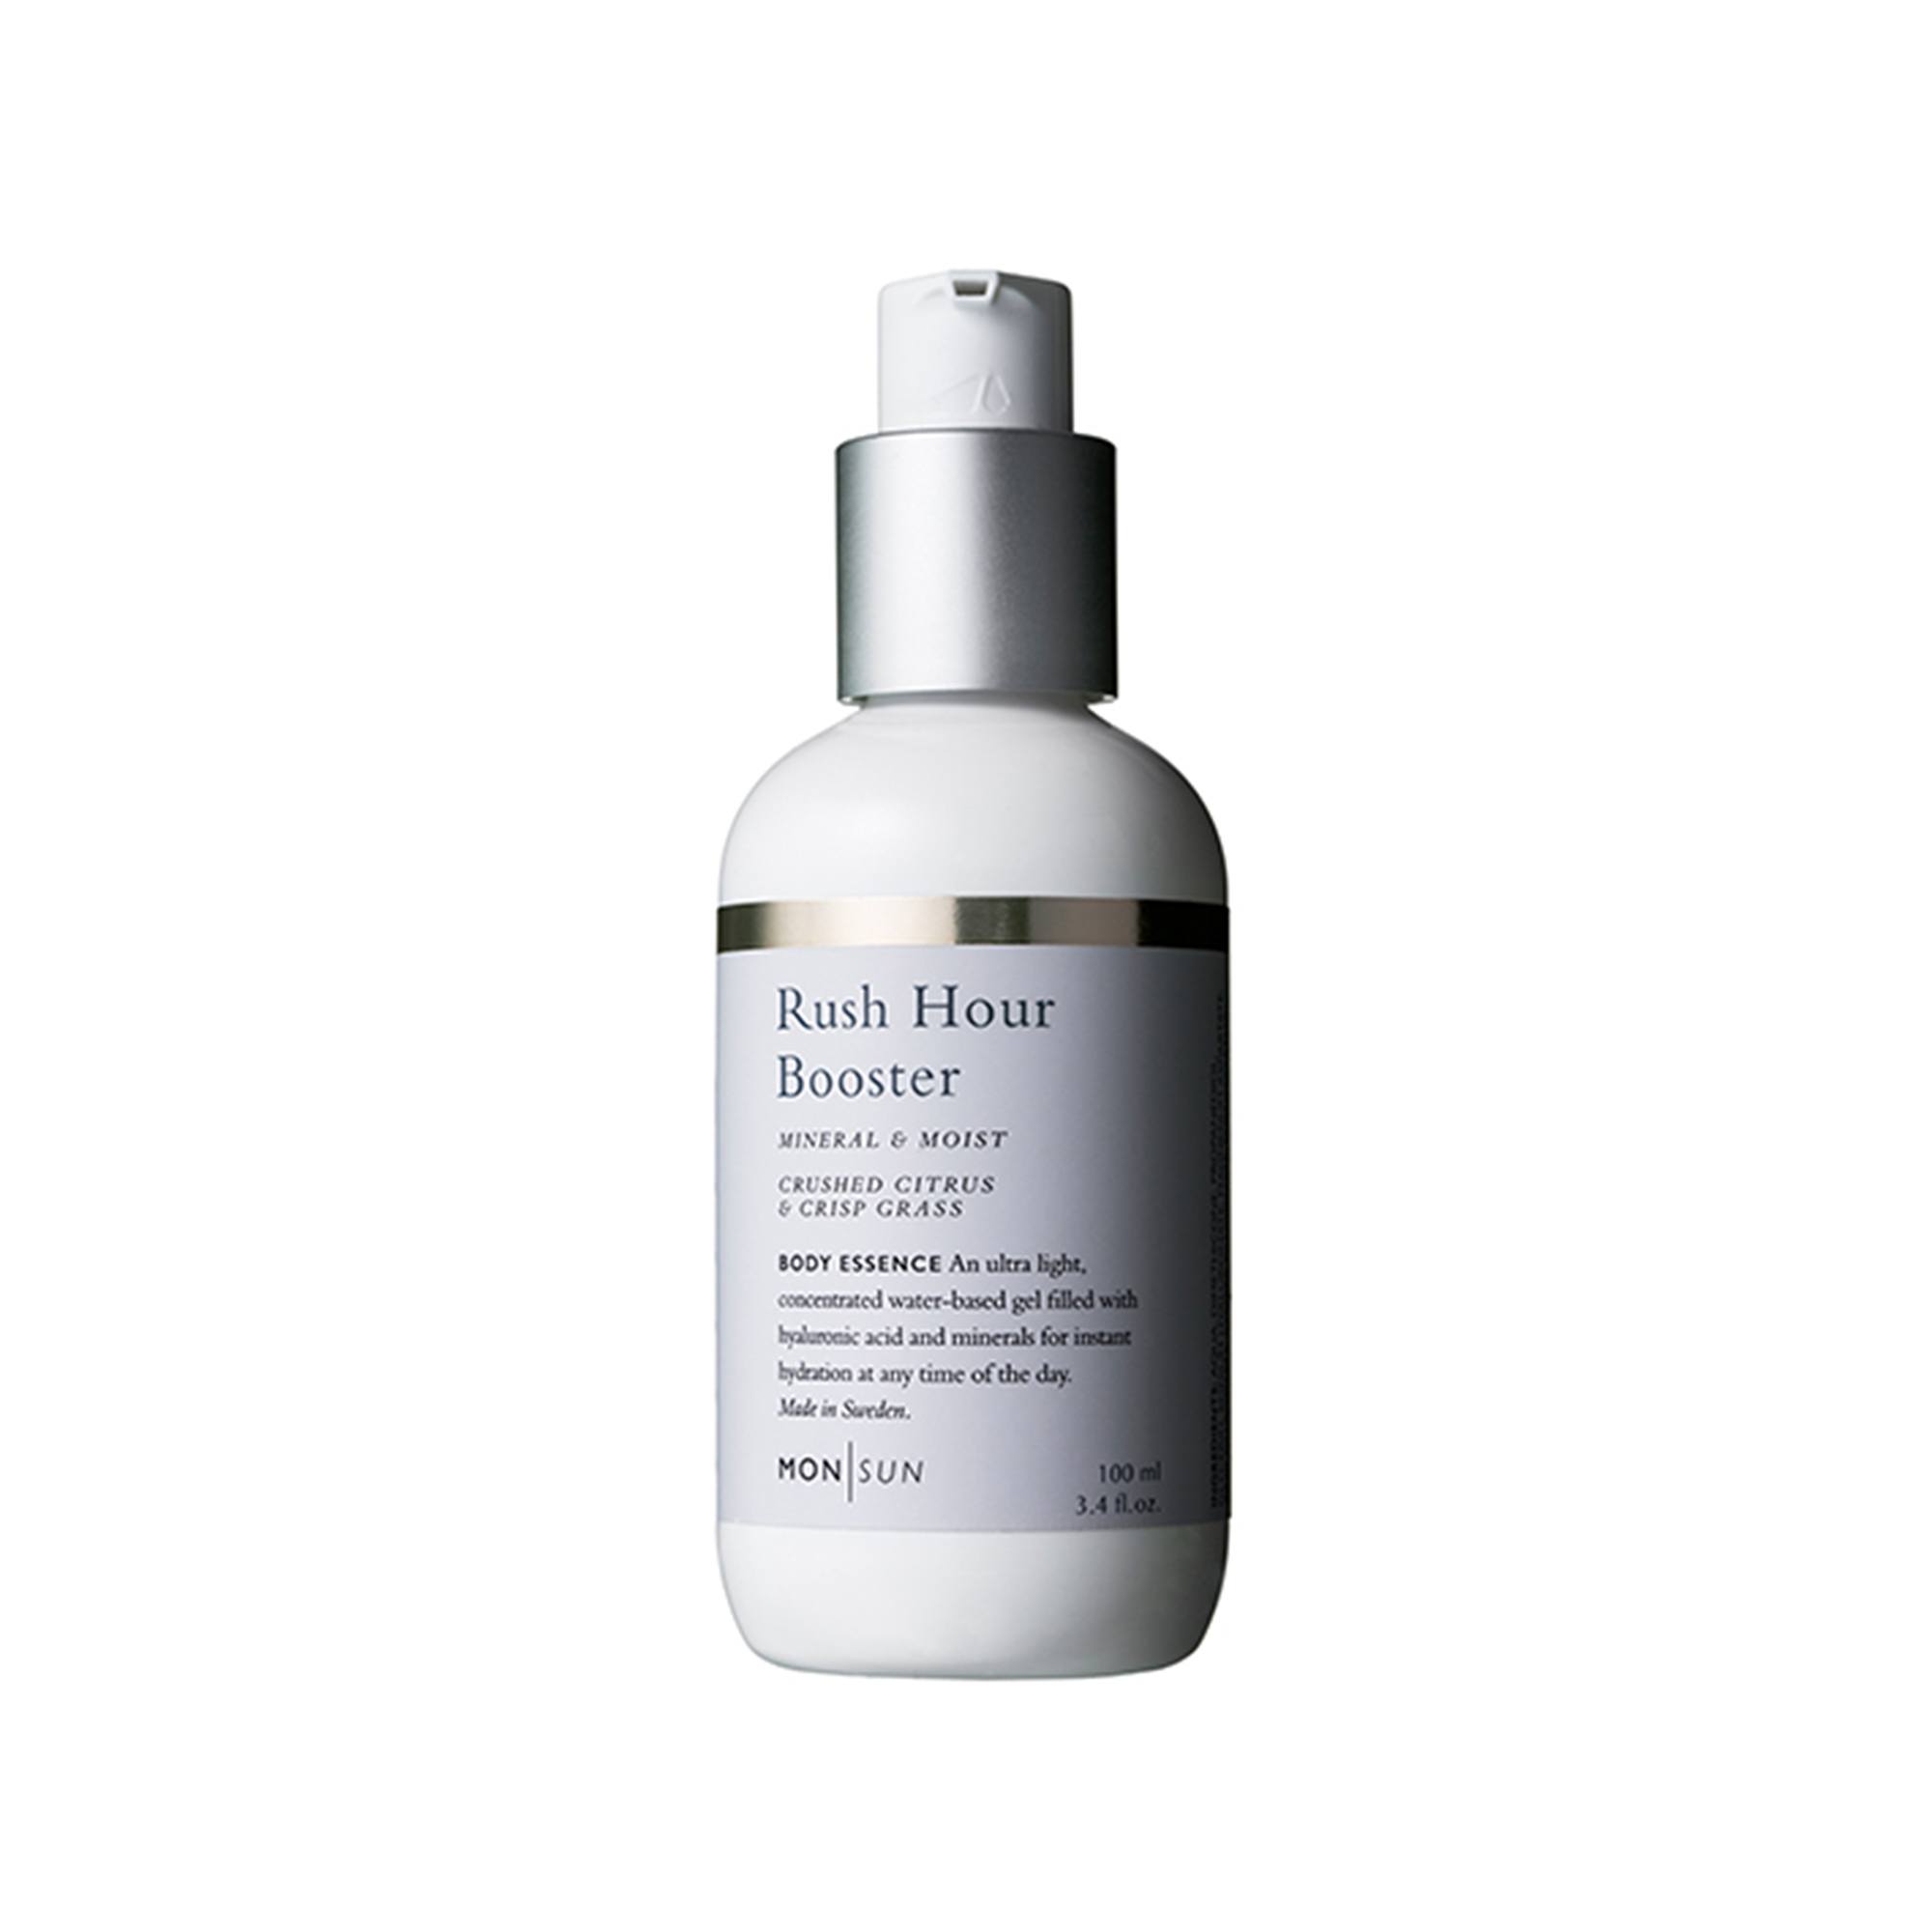 Rush Hour Booster Mineral & Moist Body Essence